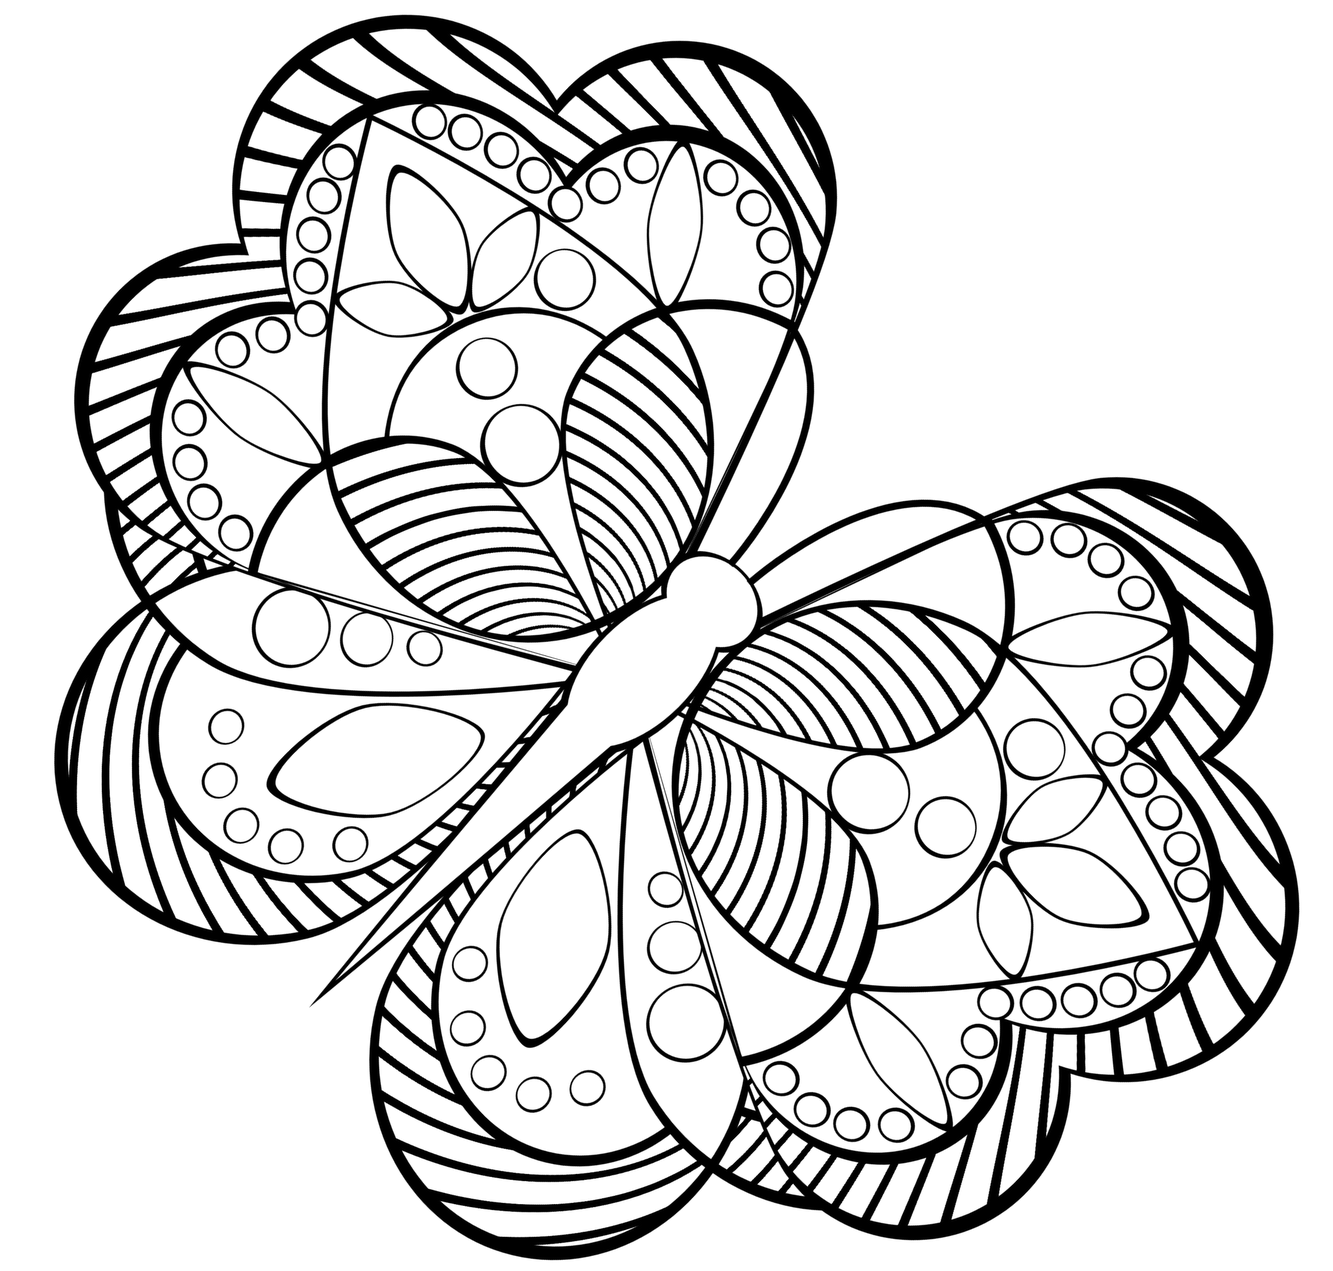 coloring adults printable floral coloring pages for adults best coloring pages for adults coloring printable